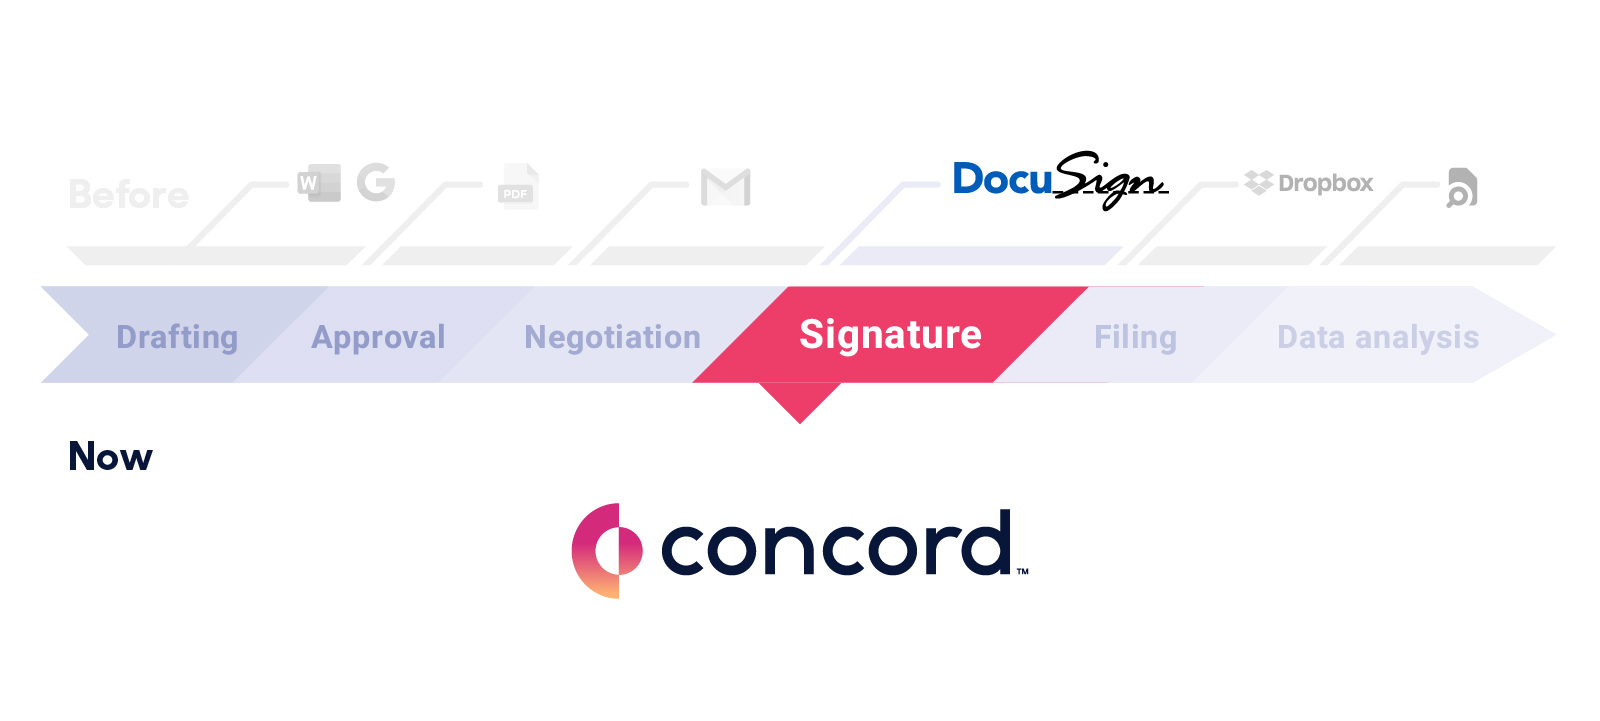 Electronic signatures are the final stage in finalizing the contract, but not the last stage of the contract lifecycle.